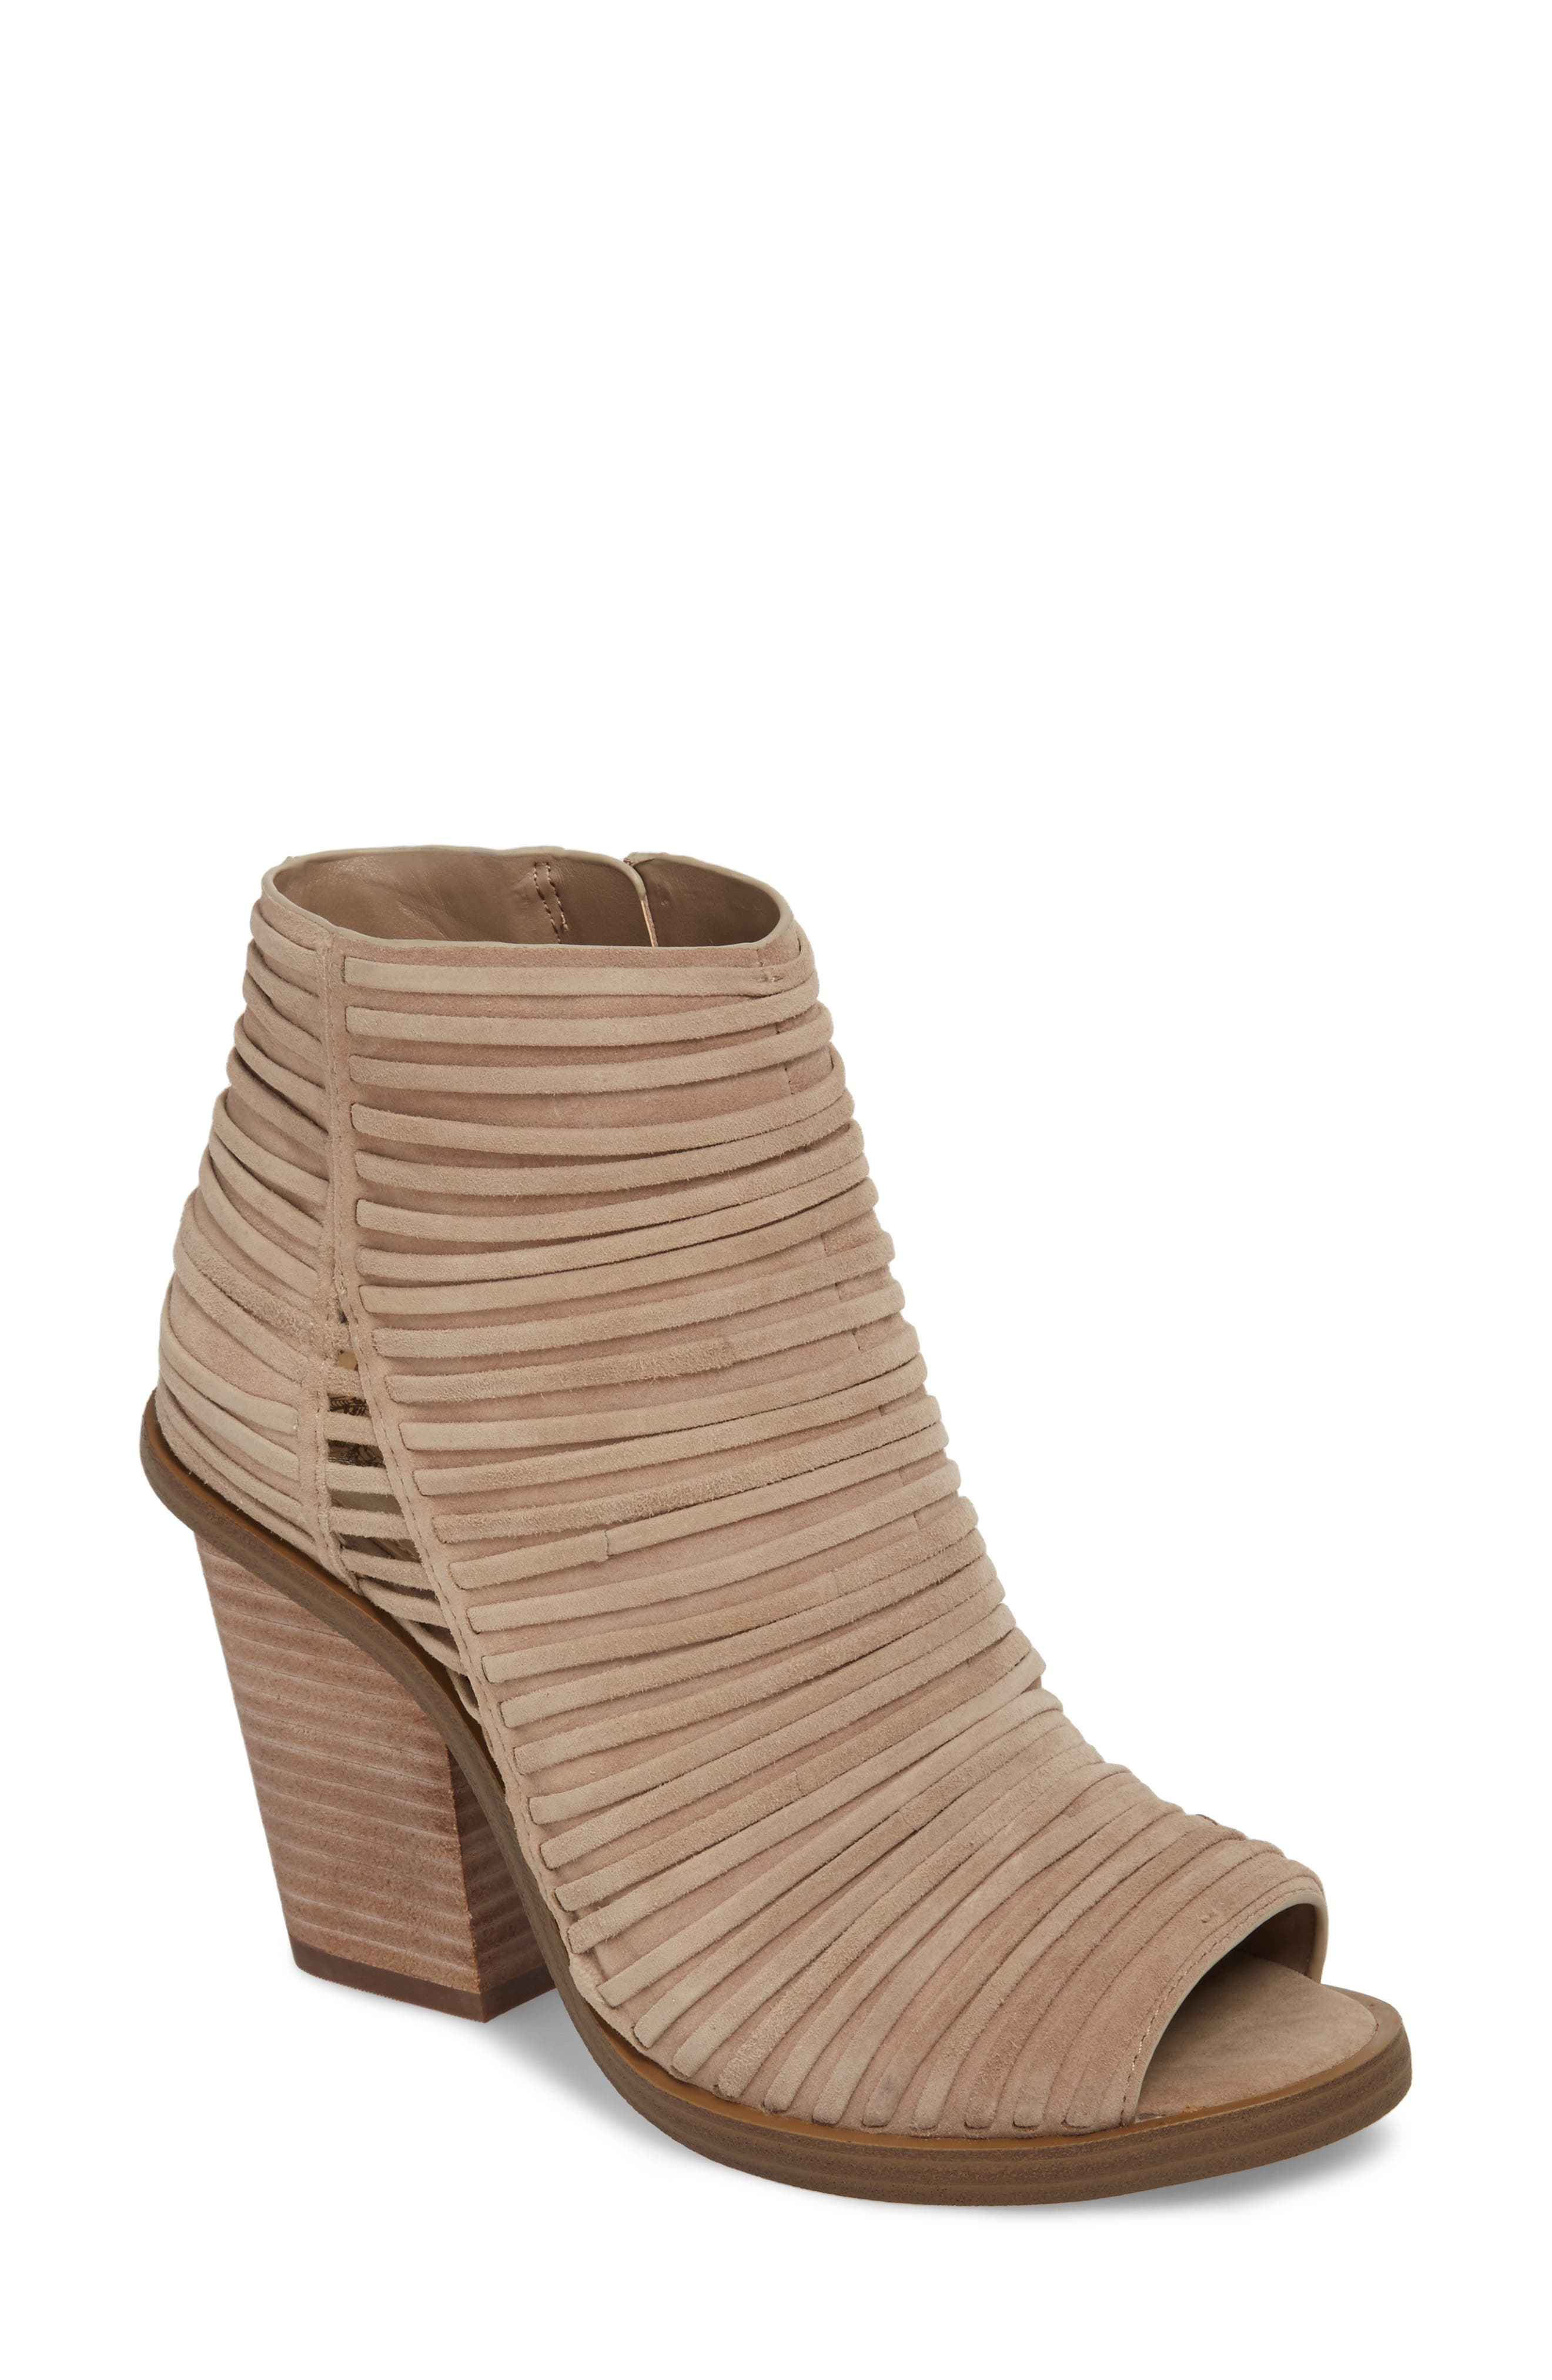 Feteena Bootie,                         Main,                         color, FRENCH TAUPE SUEDE